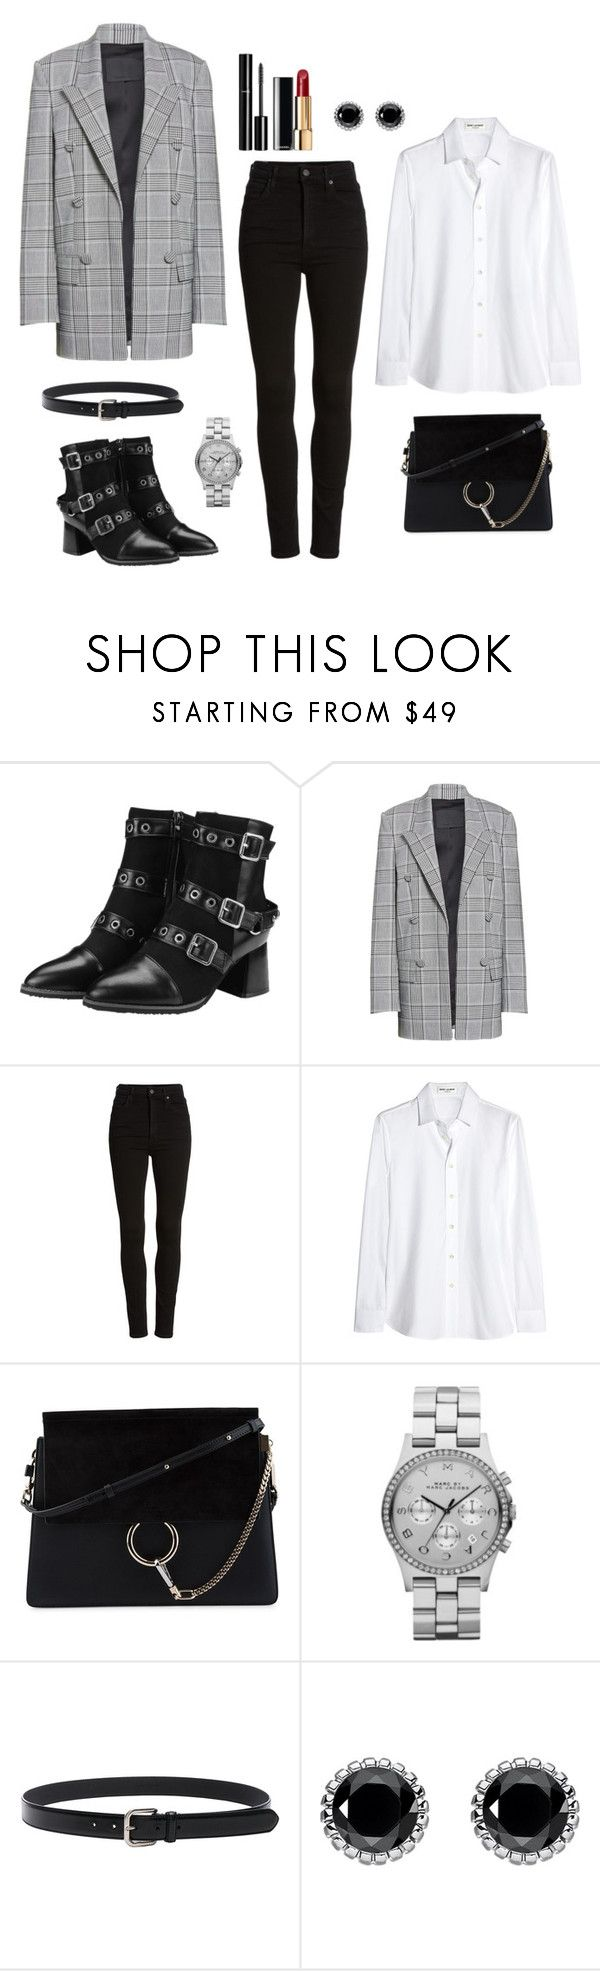 """Untitled #355"" by bajka2468 on Polyvore featuring Alexander Wang, Citizens of Humanity, Yves Saint Laurent, Chloé, Chanel, Marc by Marc Jacobs, Maison Margiela, Thomas Sabo and CoffeeDate"